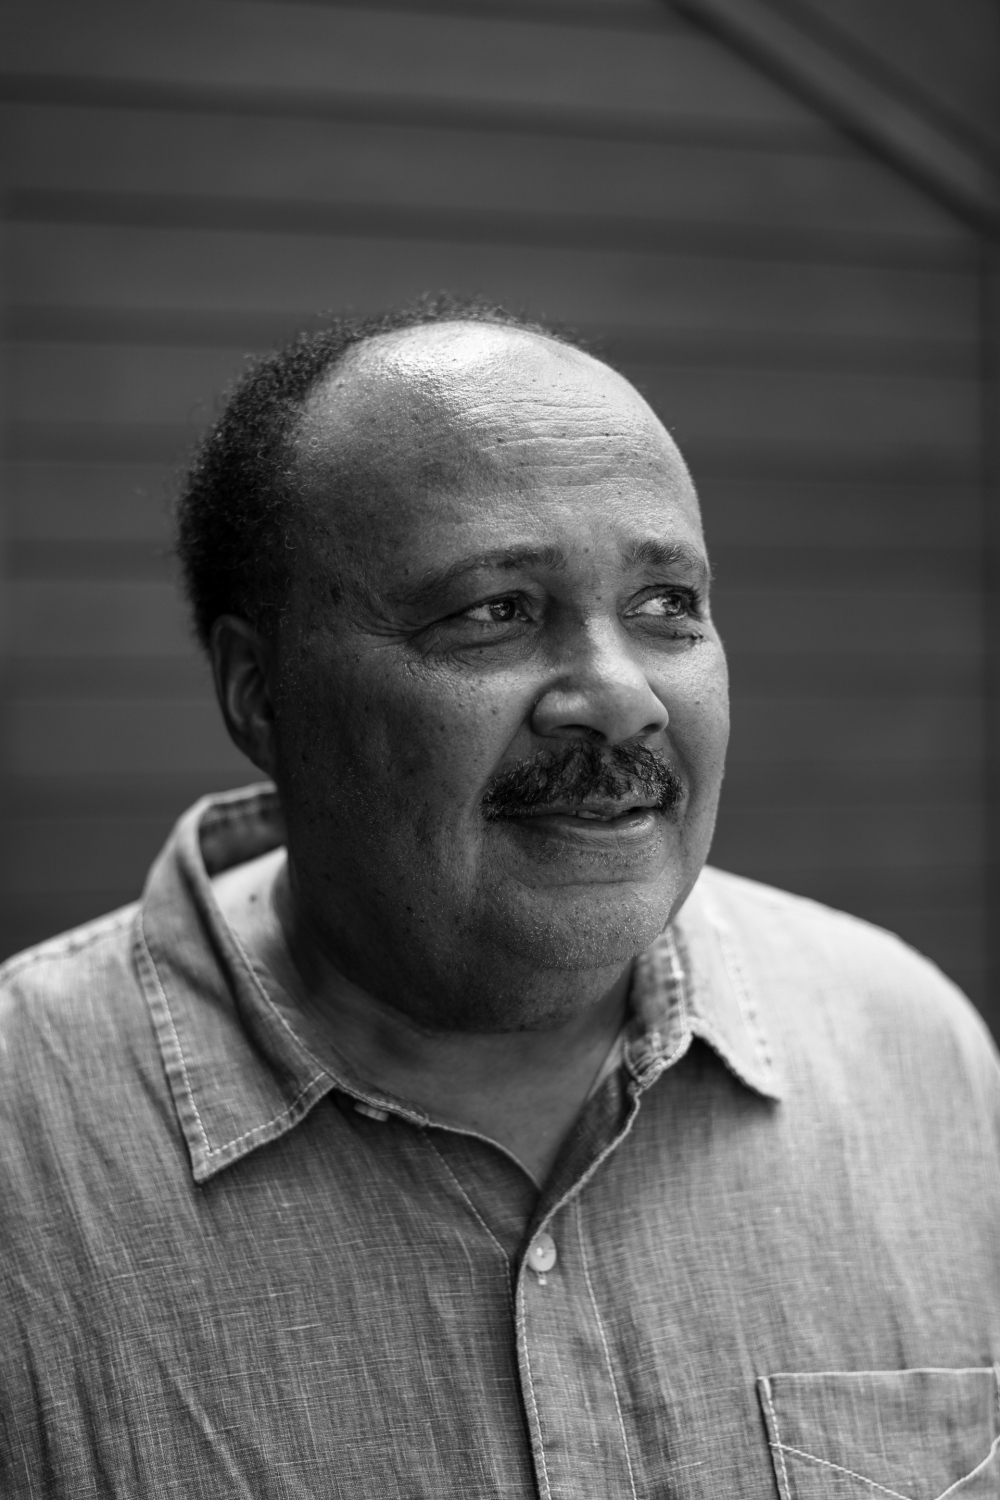 Martin Luther King III, first son of Martin Luther King Jr.